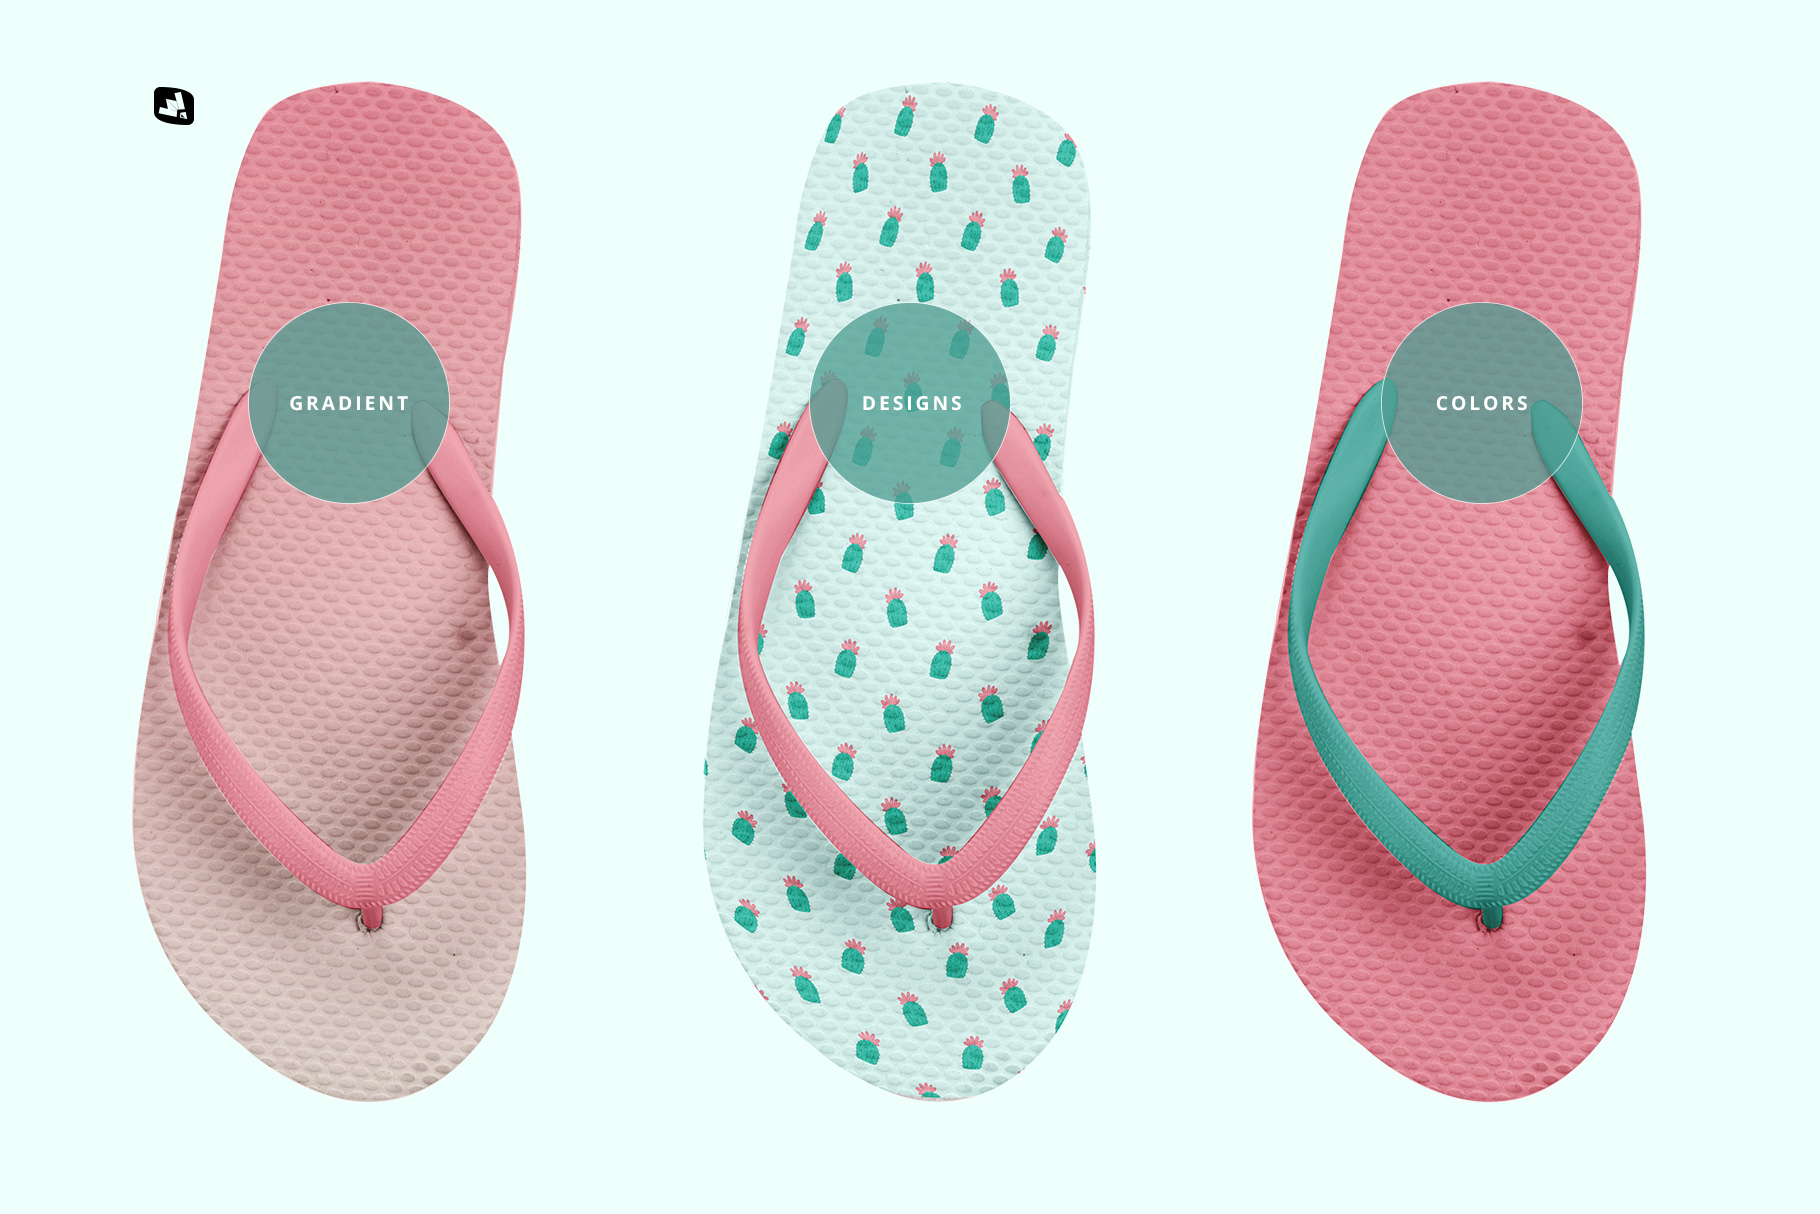 types of the unisex rubber flip flop pair mockup